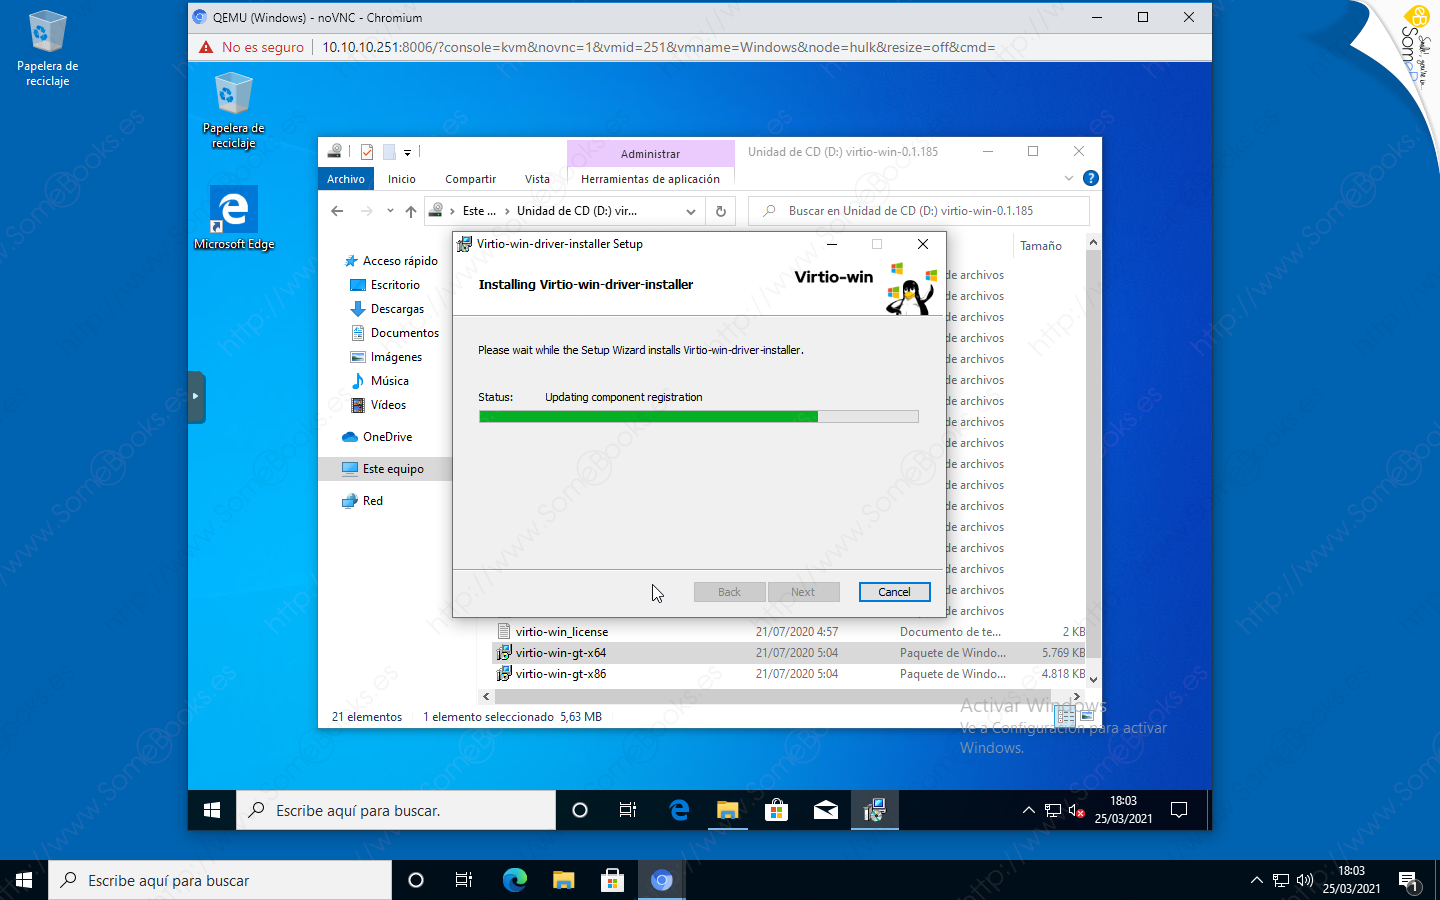 Instalar-Windows-10-en-una-maquina-virtual-sobre-Proxmox-VE-025